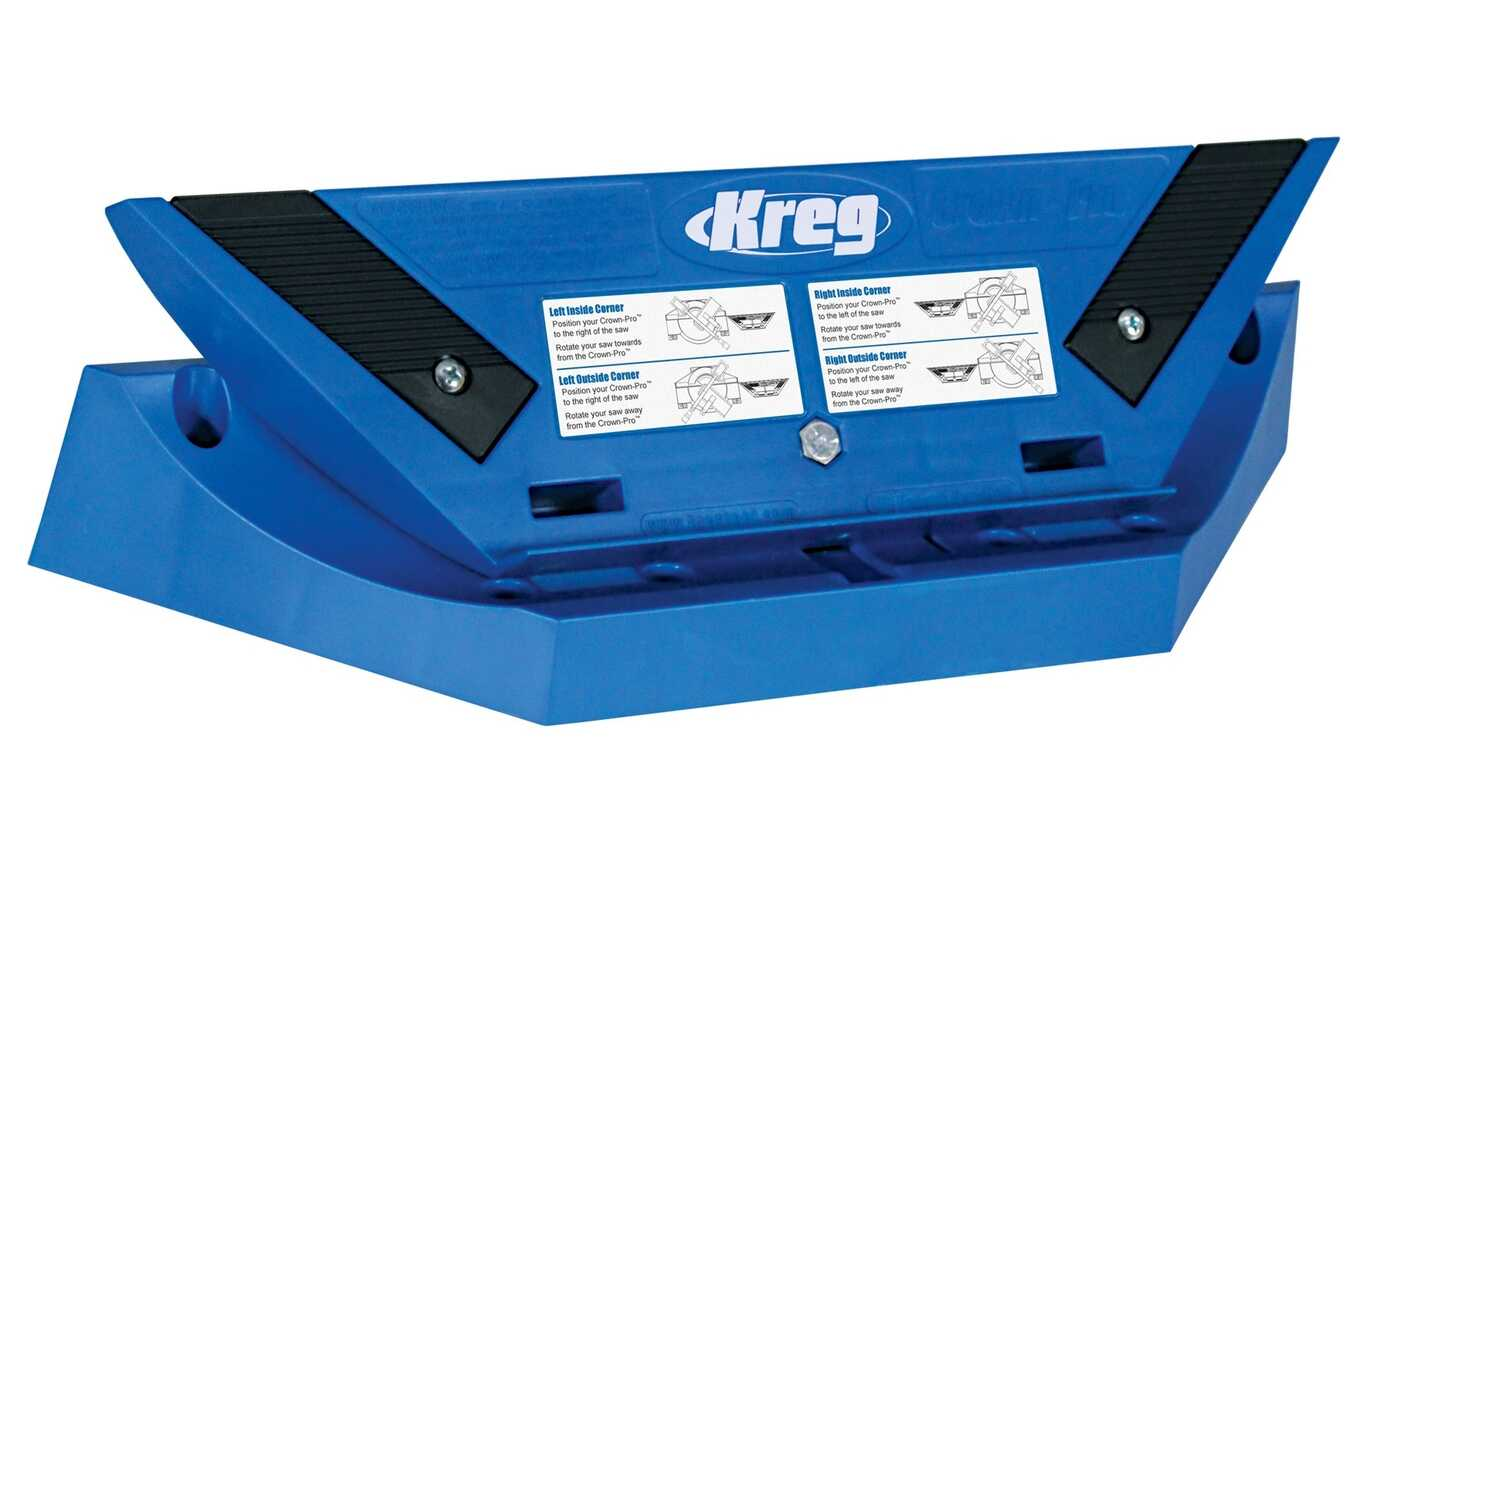 Kreg  Crown-Pro  Plastic  Jig with Angle Finder  1/2 in. to 5-1/2 in. Blue  1 pc.